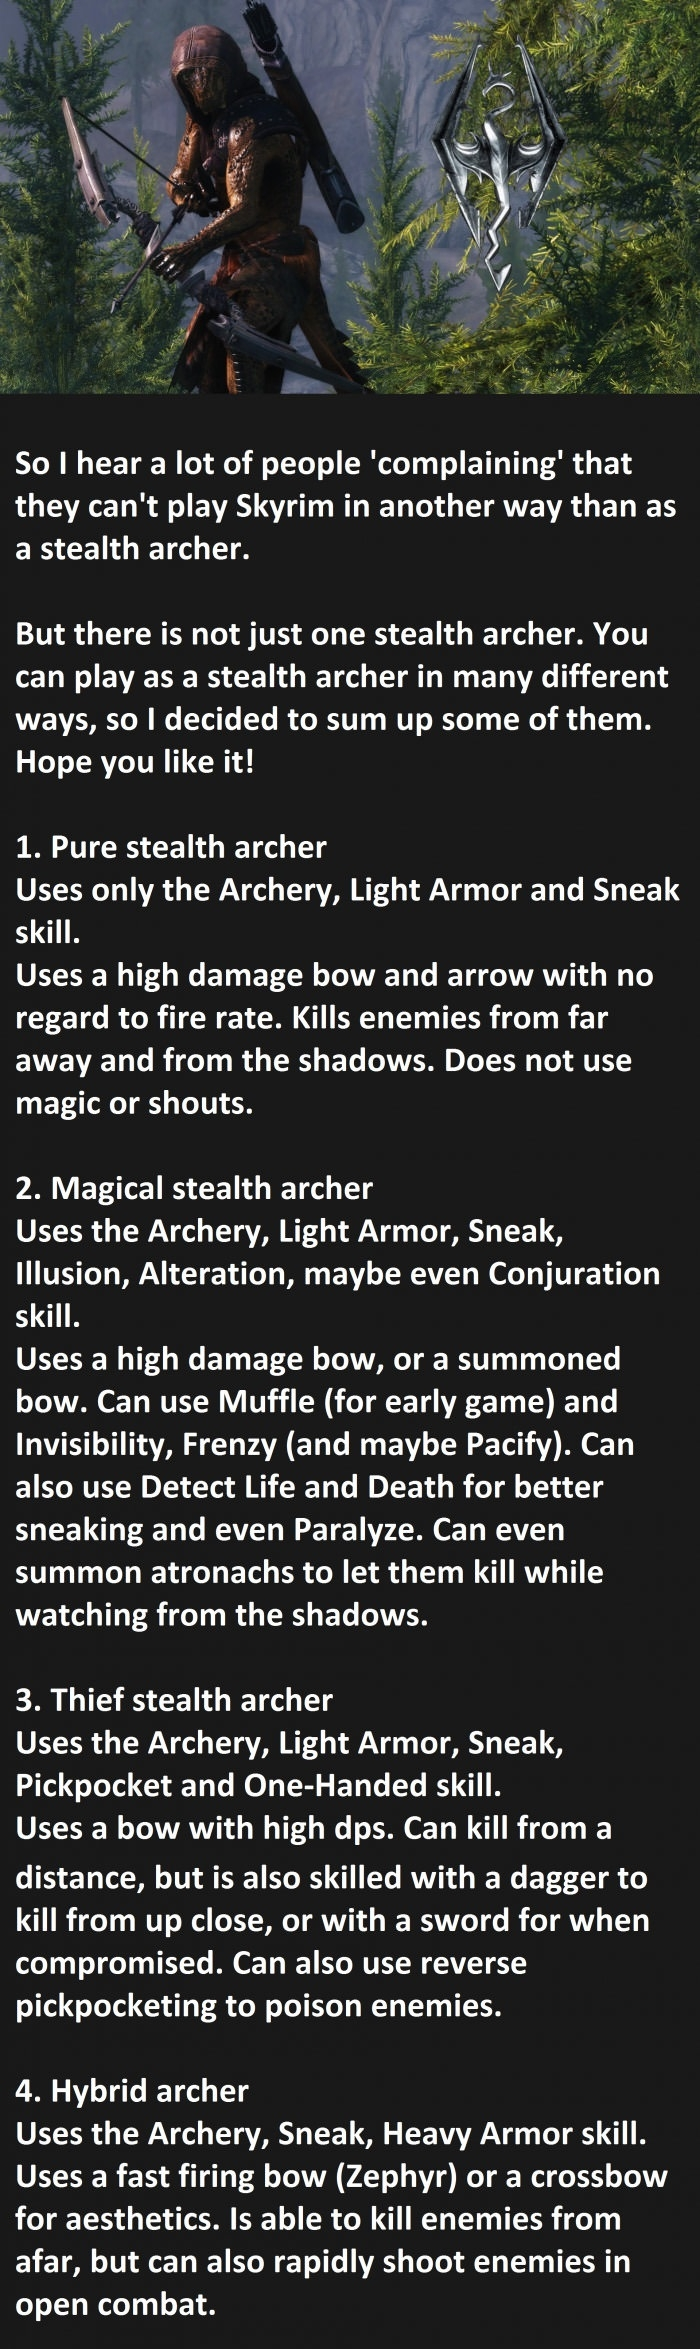 Skyrim stealth archers